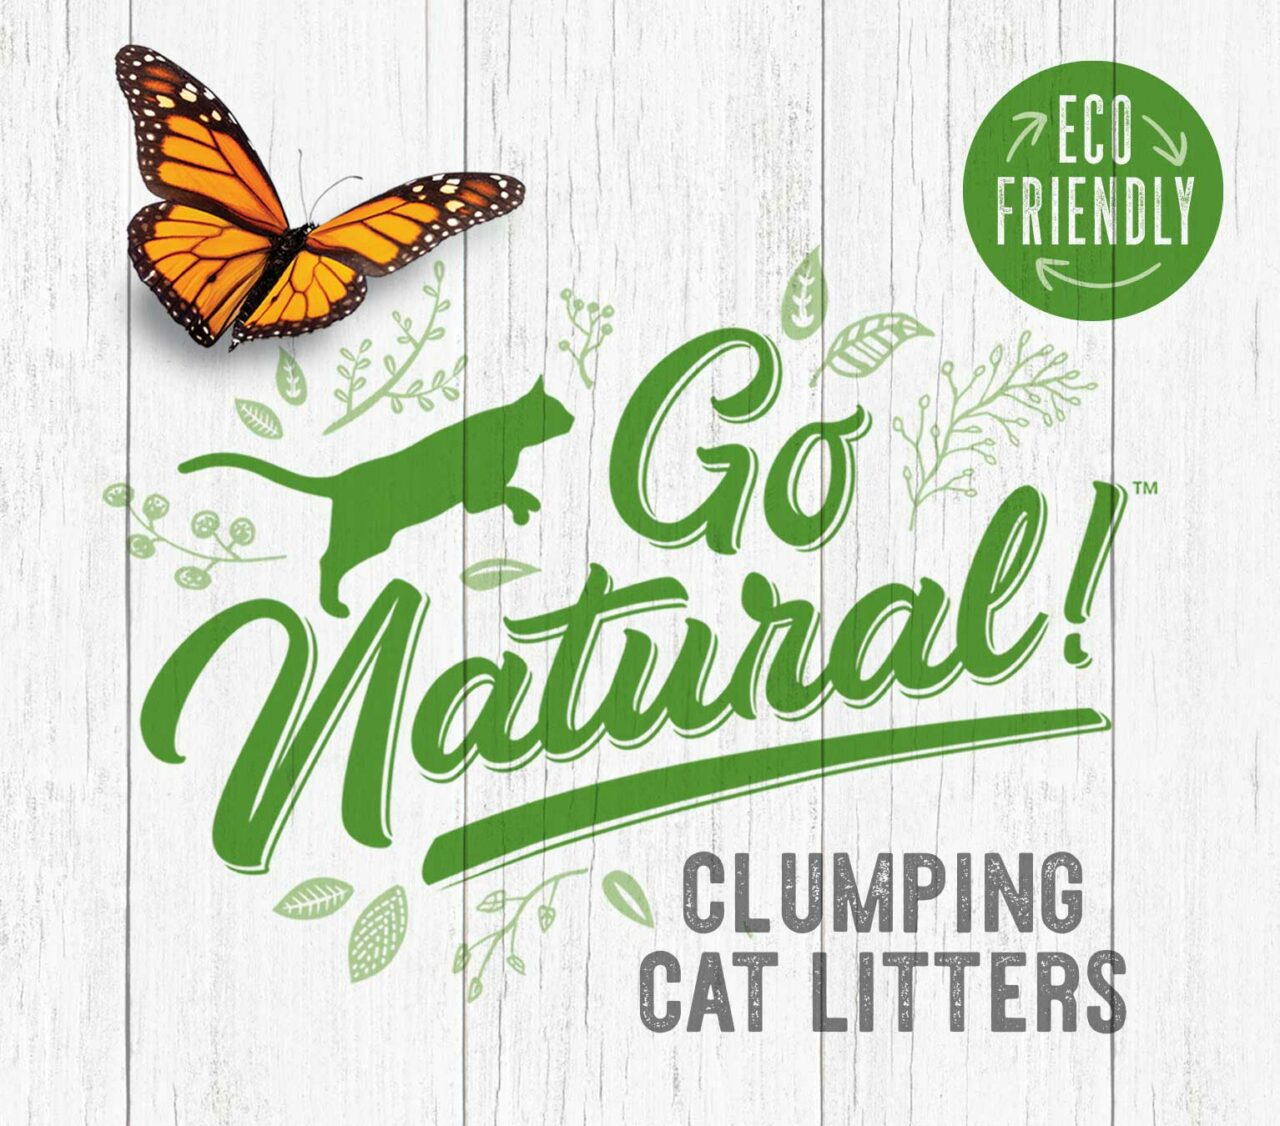 Go Natural Clumping cat litters - eco-friendly